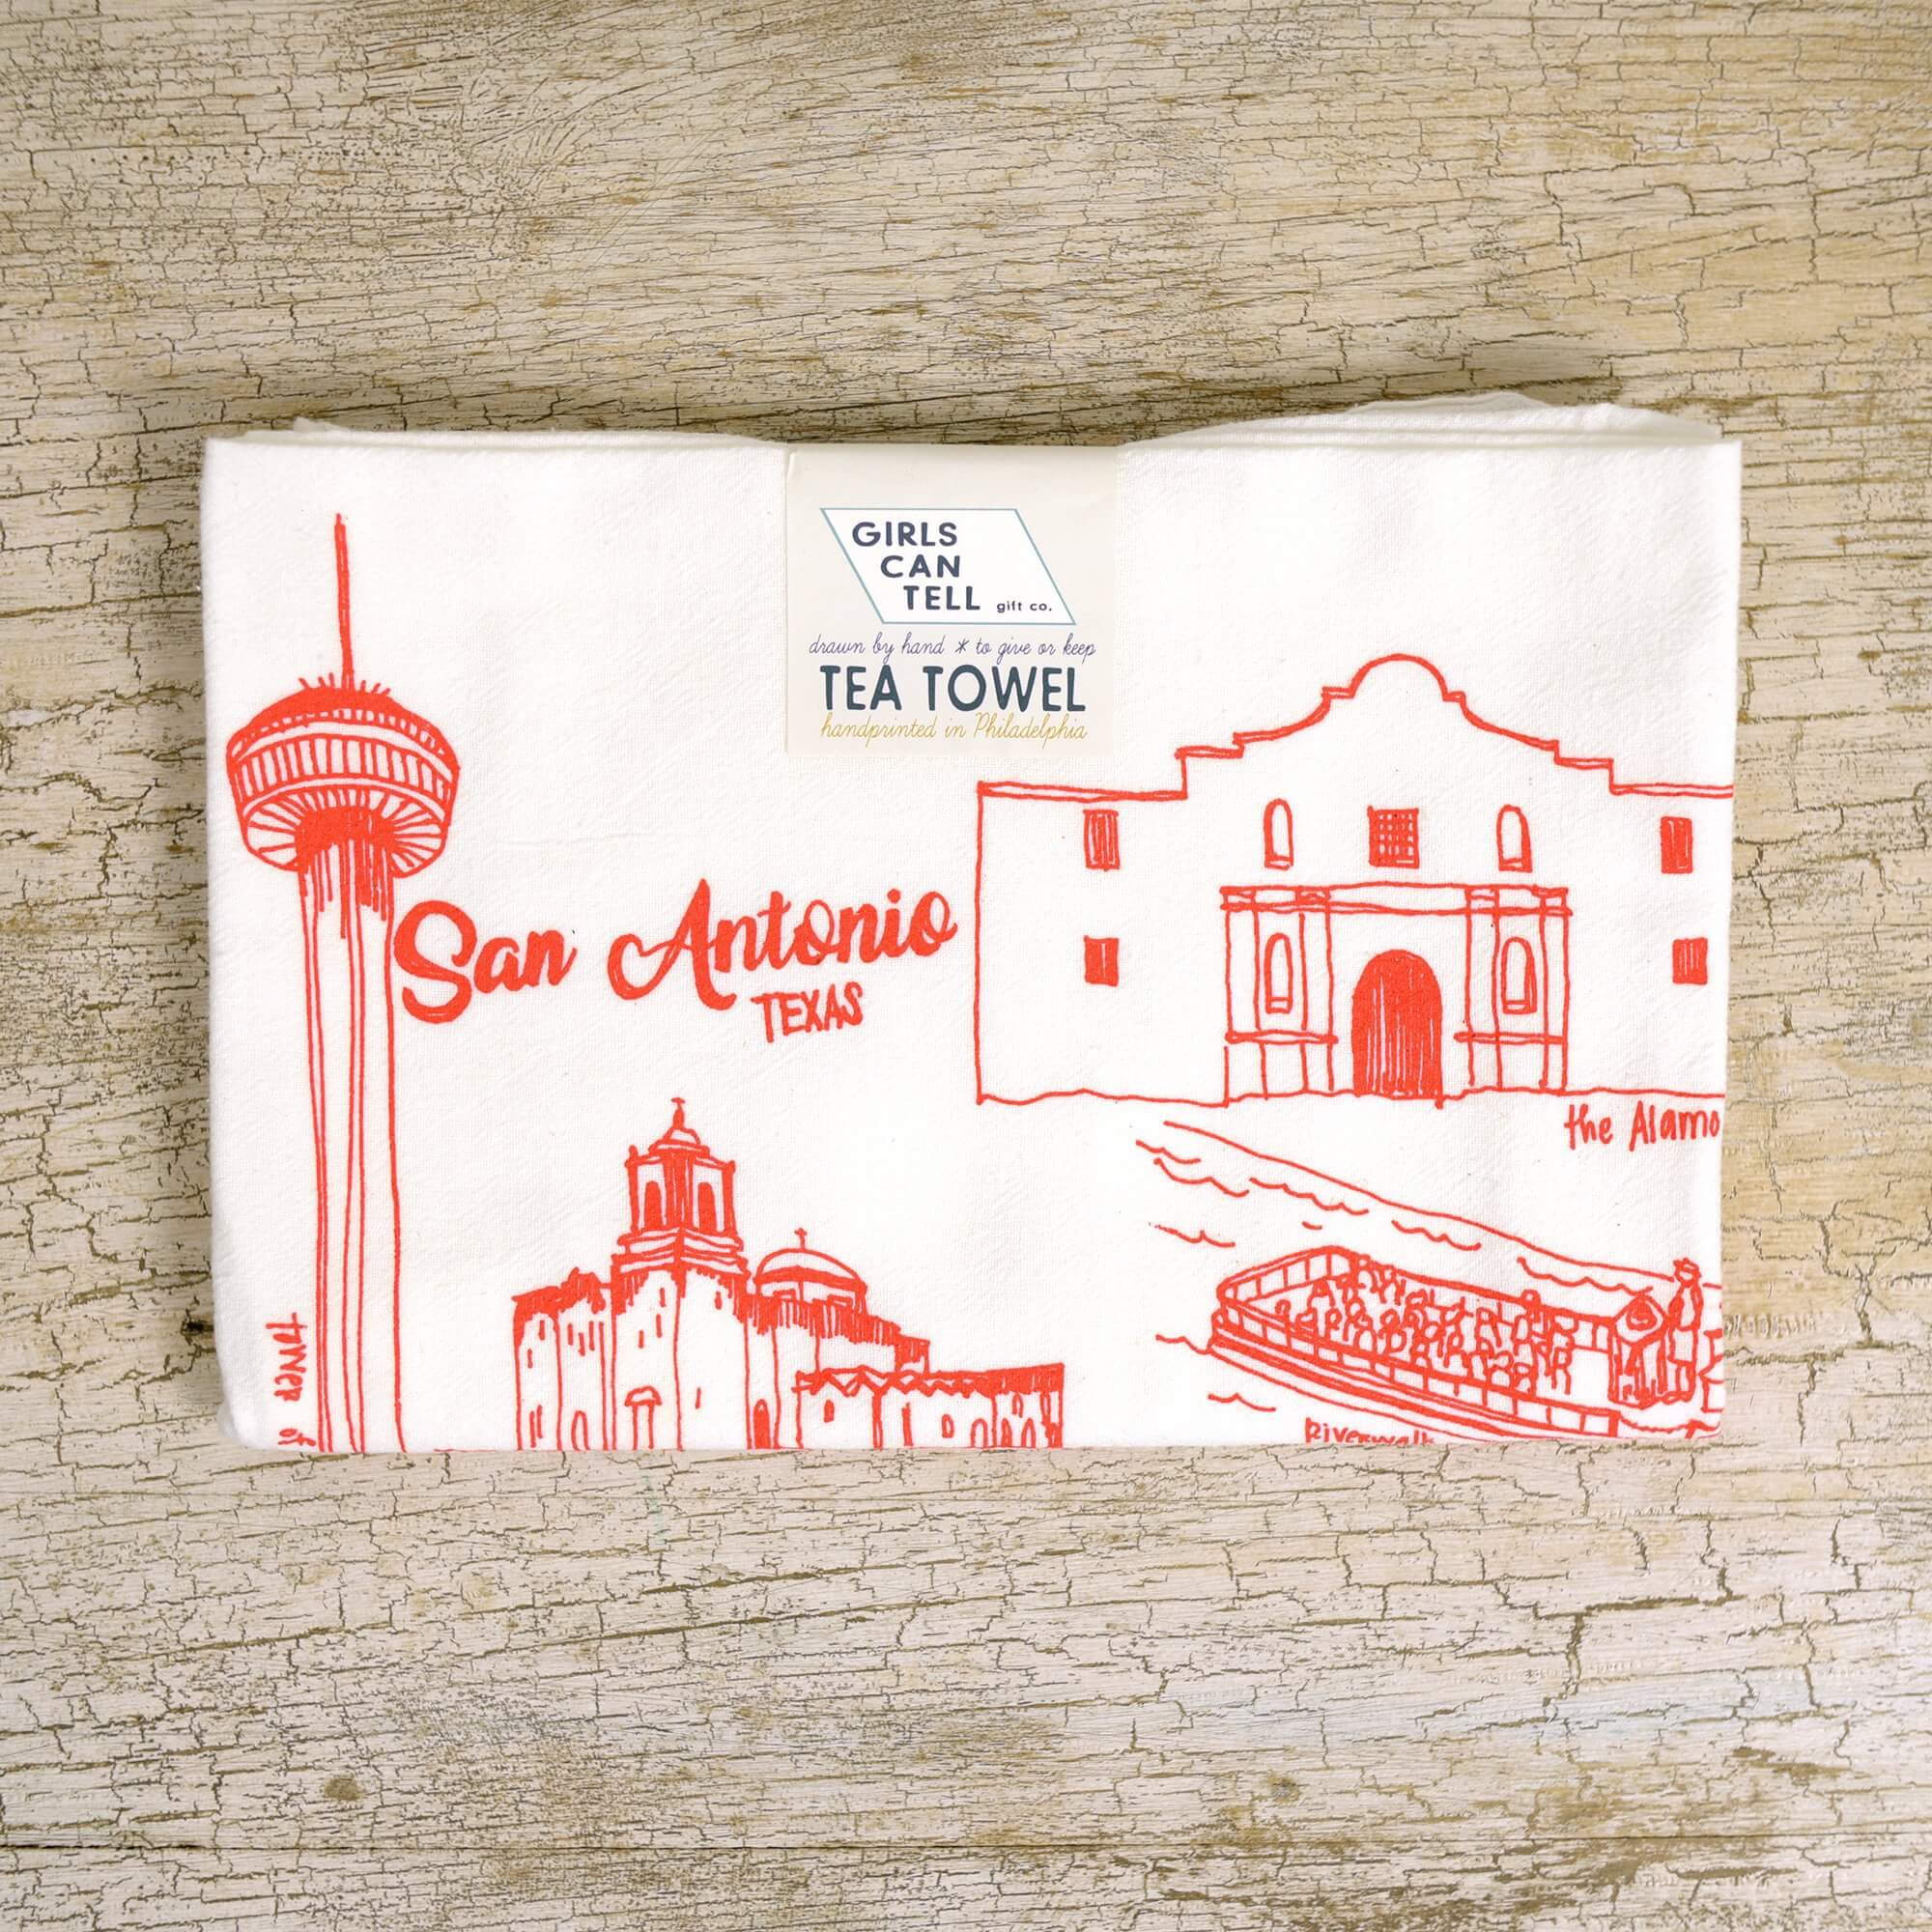 San Antonio Tea Towel